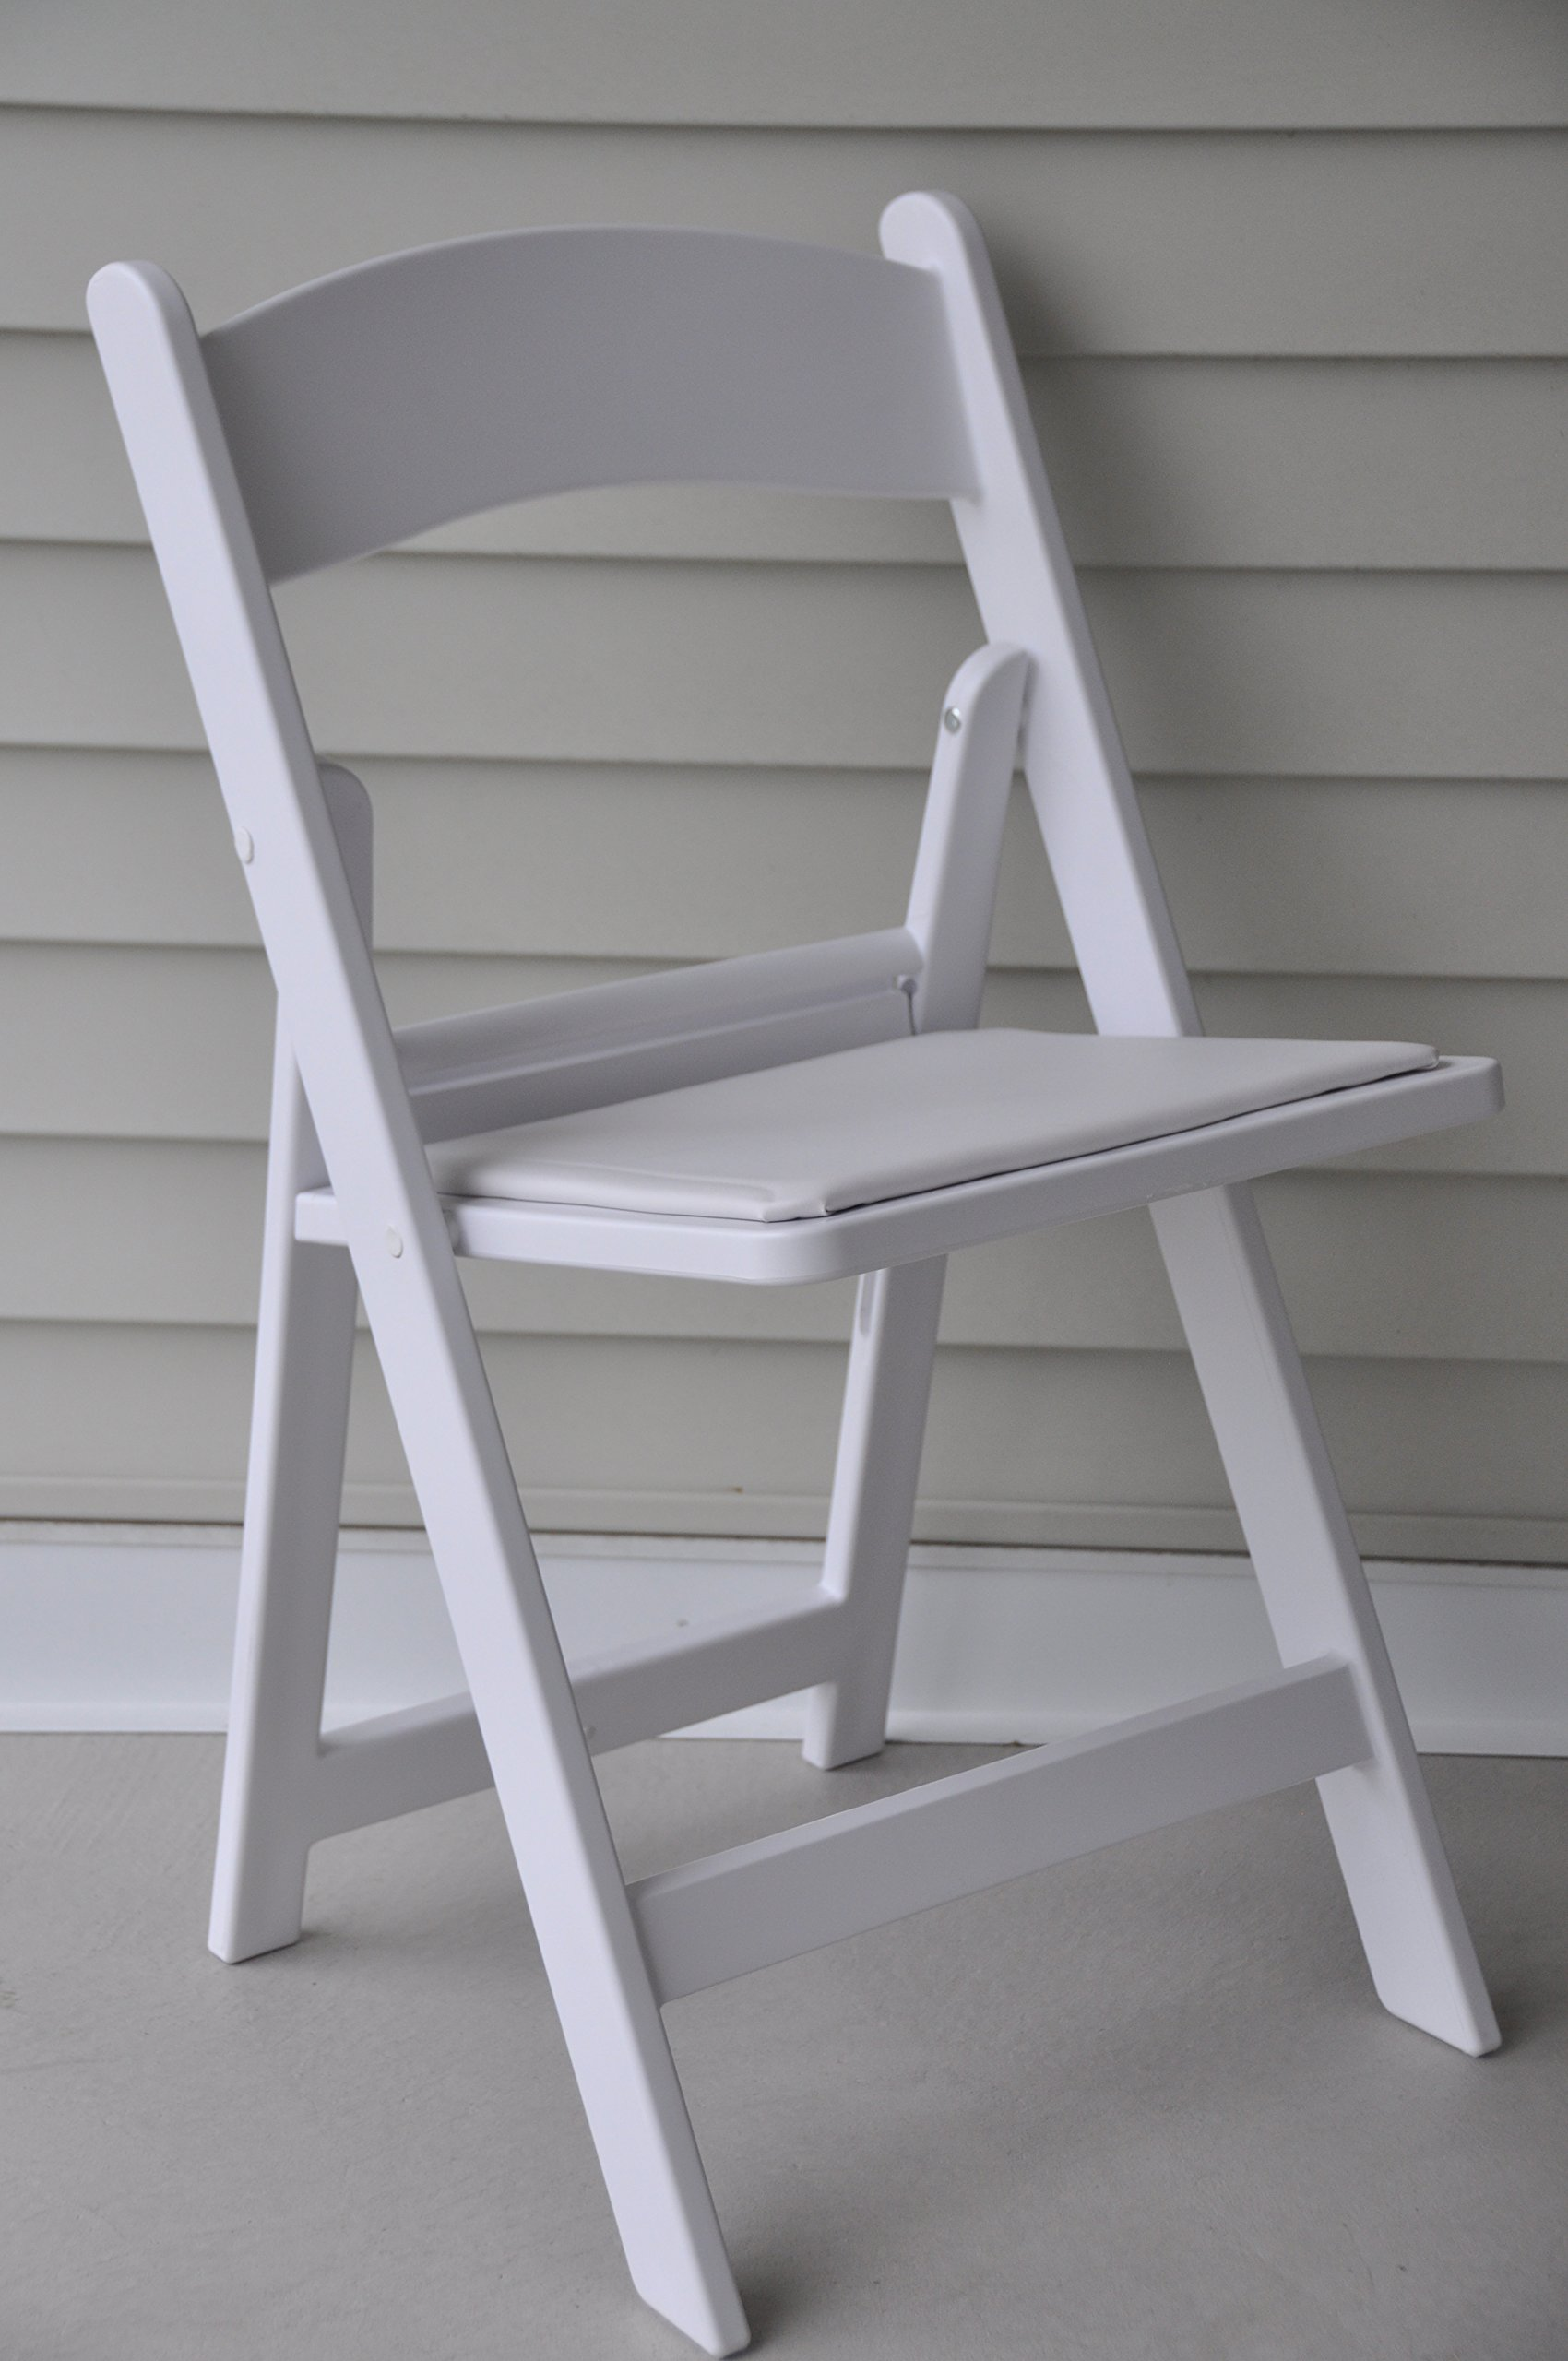 Exceptionnel Get Quotations · Folding Chairs   White Resin Heavy Duty Stackable Folding  Banquet Chairs   64 Pack